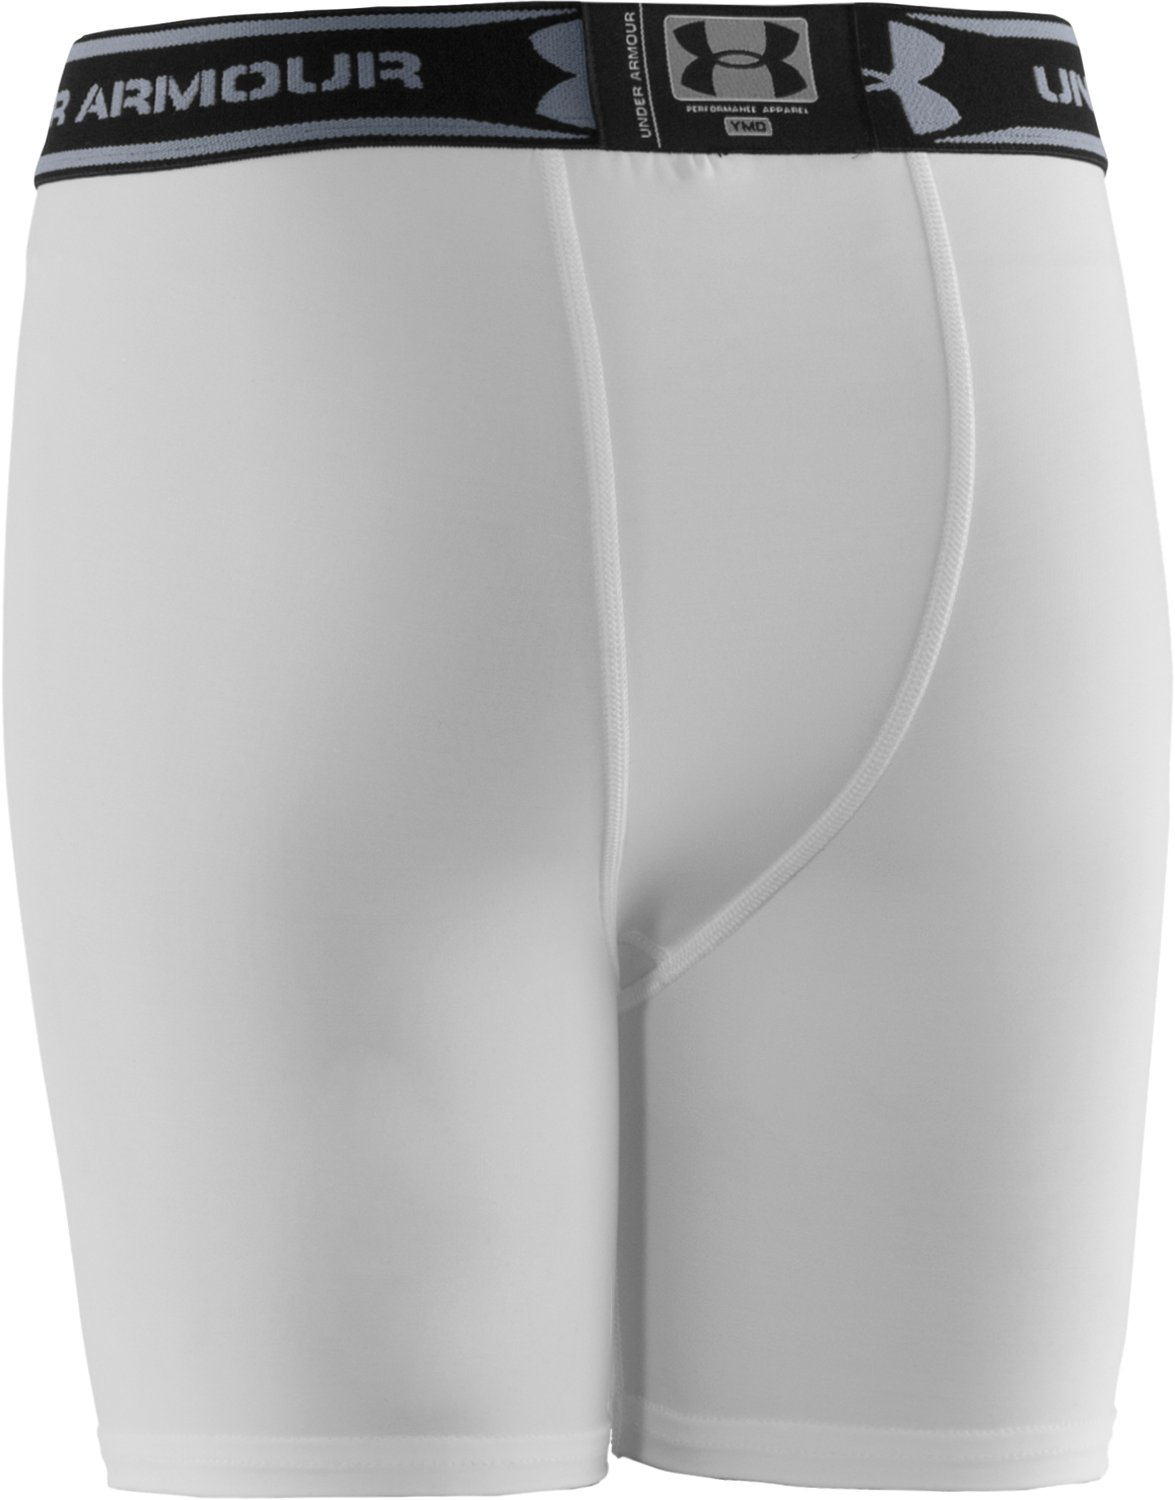 "Boys' HeatGear® 4"" Baselayer Shorts, White"